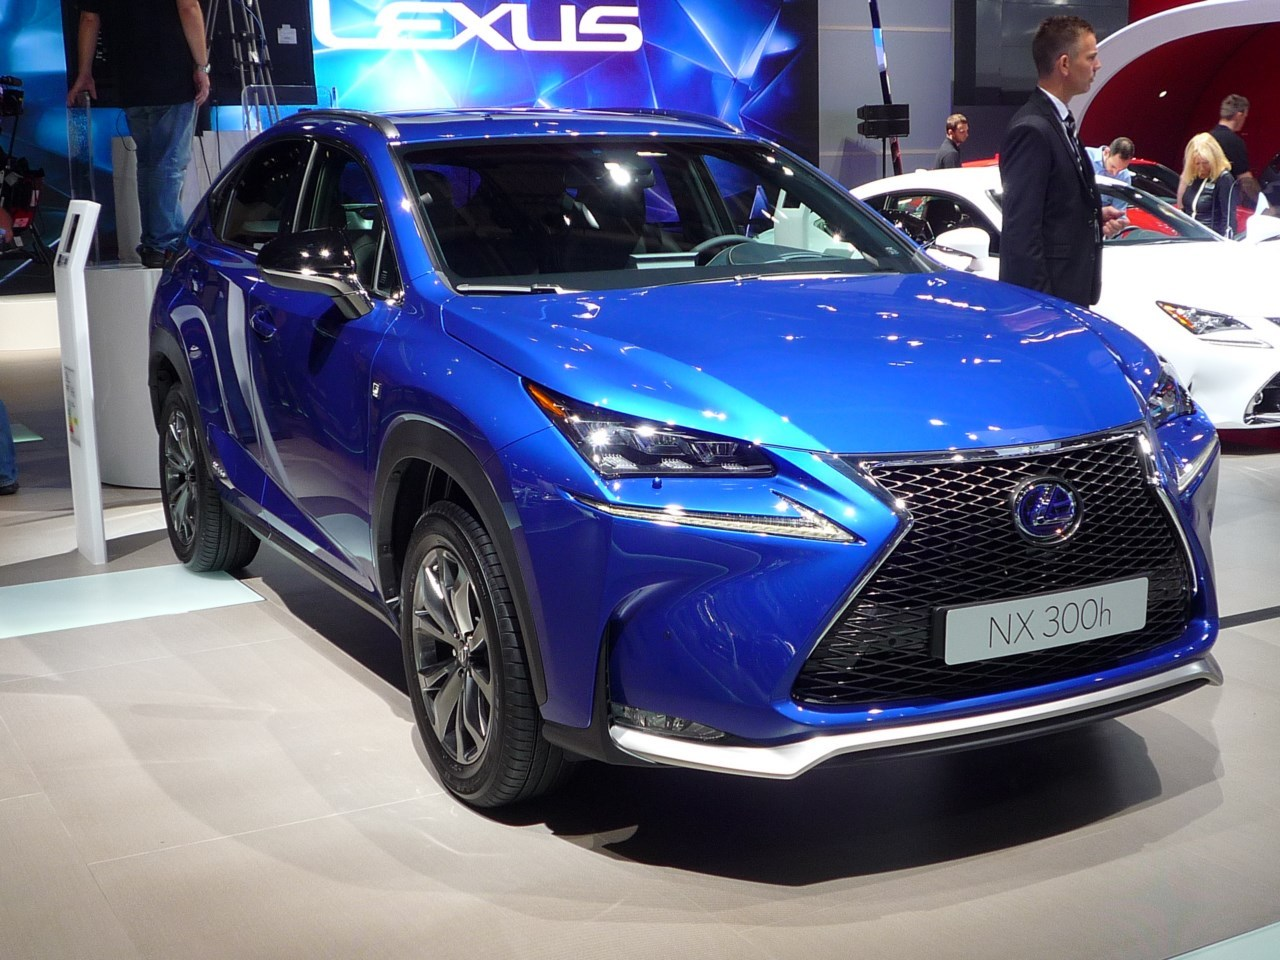 mondial auto 2014 le lexus nx en mode star au salon de paris l 39 argus. Black Bedroom Furniture Sets. Home Design Ideas